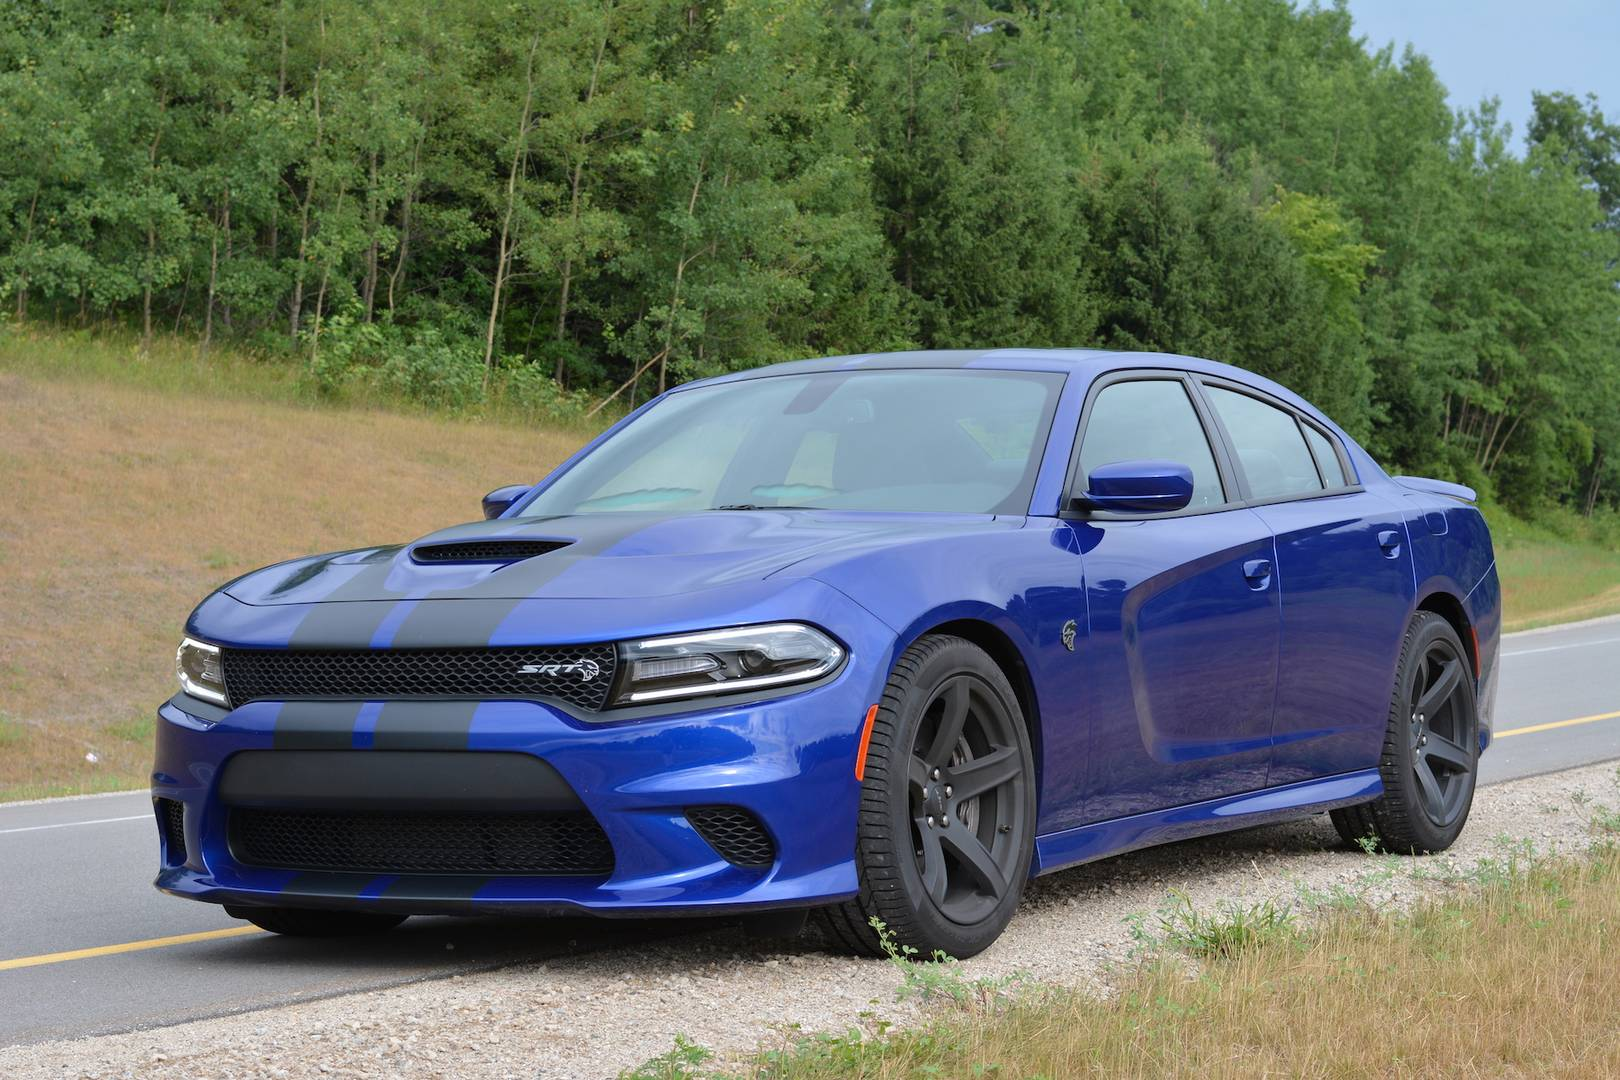 Dodge Charger Srt >> 2019 Dodge Charger Srt Hellcat Review Gtspirit